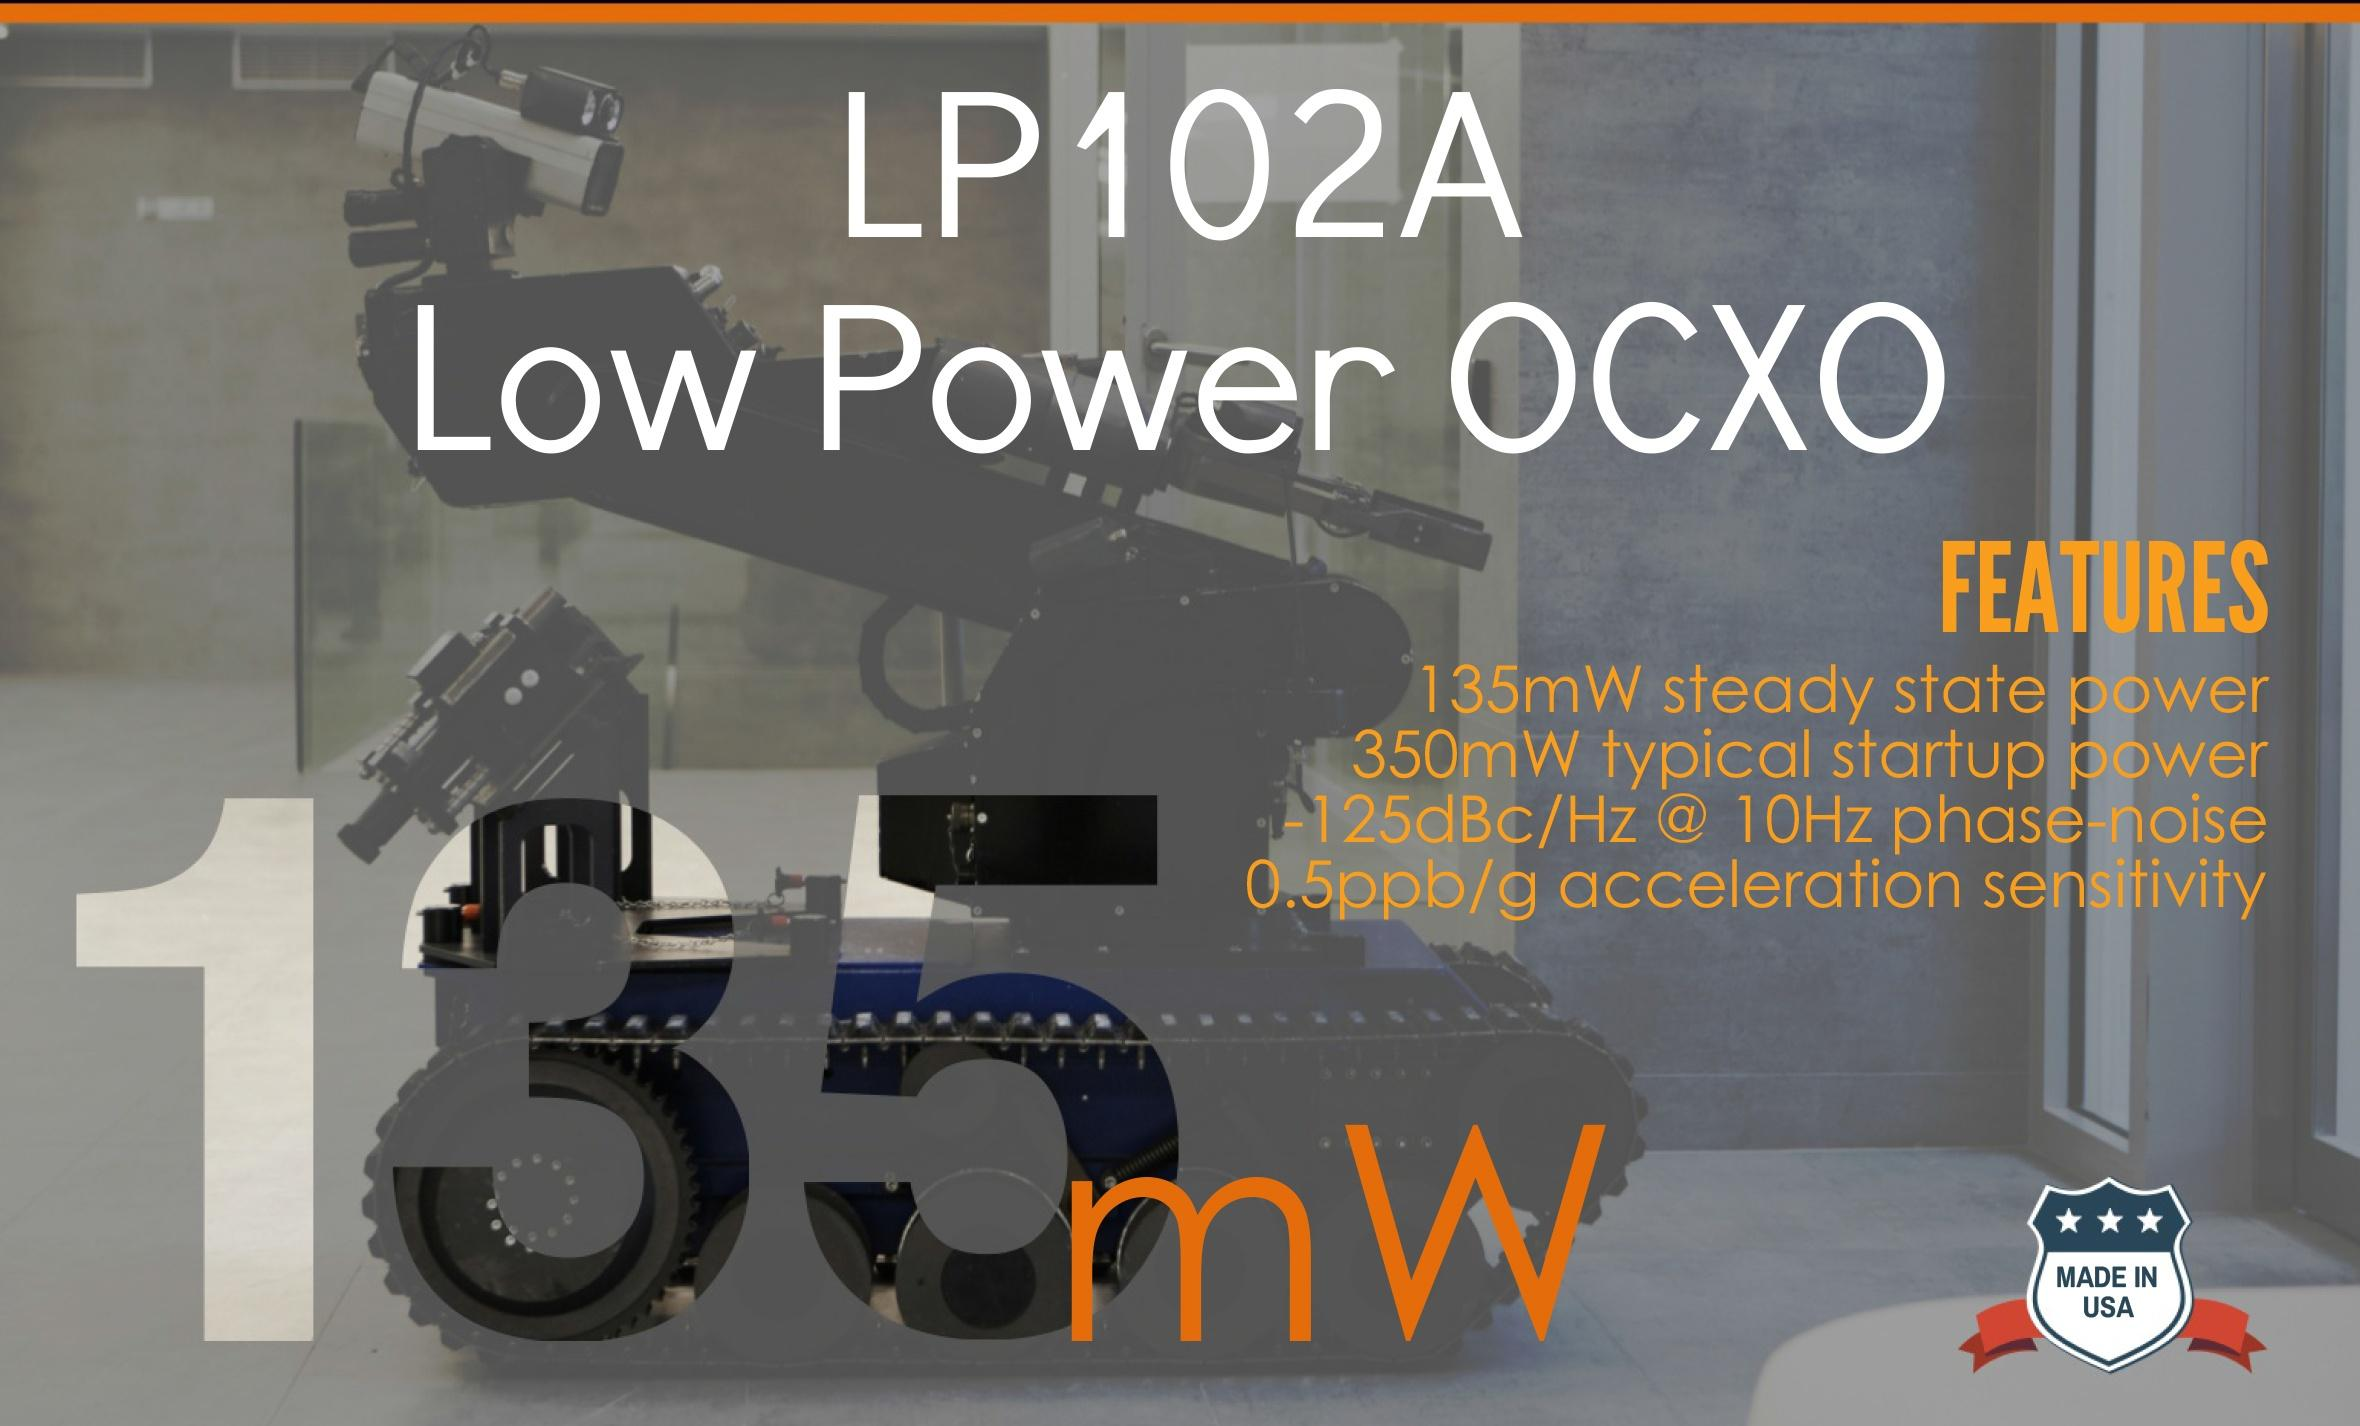 Bliley Low Power OCXO LP102 - 135mW